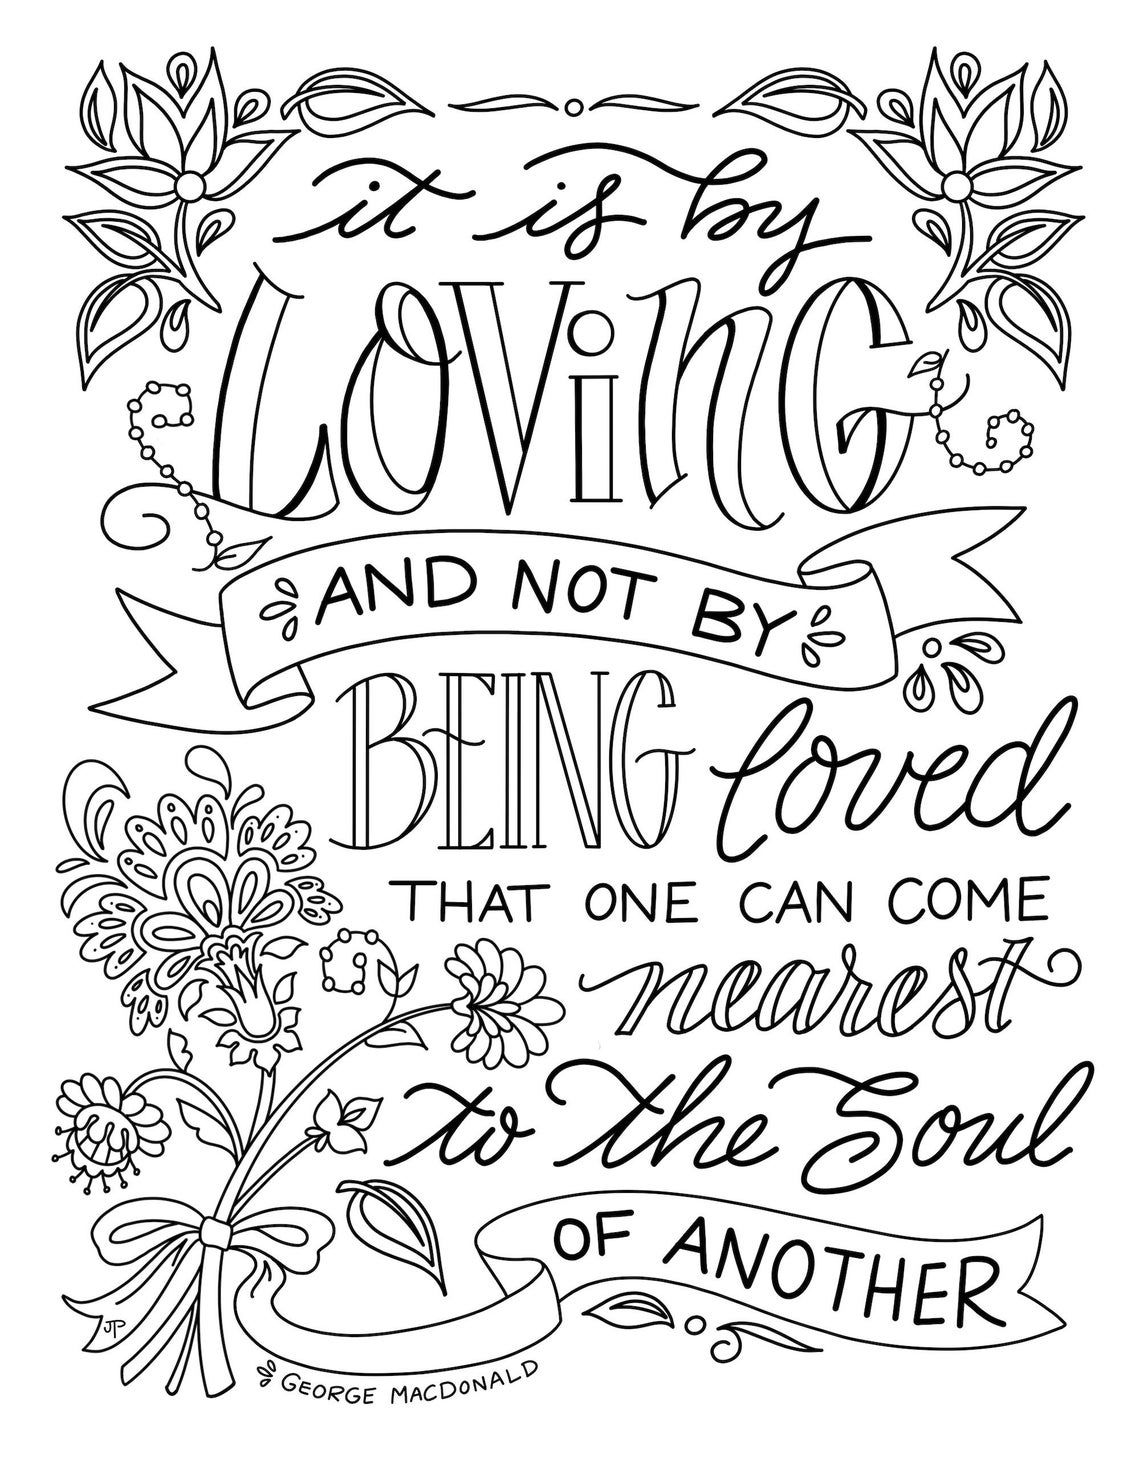 It Is By Loving George Macdonald Inspirational Quote Etsy In 2021 Inspirational Quotes Coloring George Macdonald Quote Coloring Pages